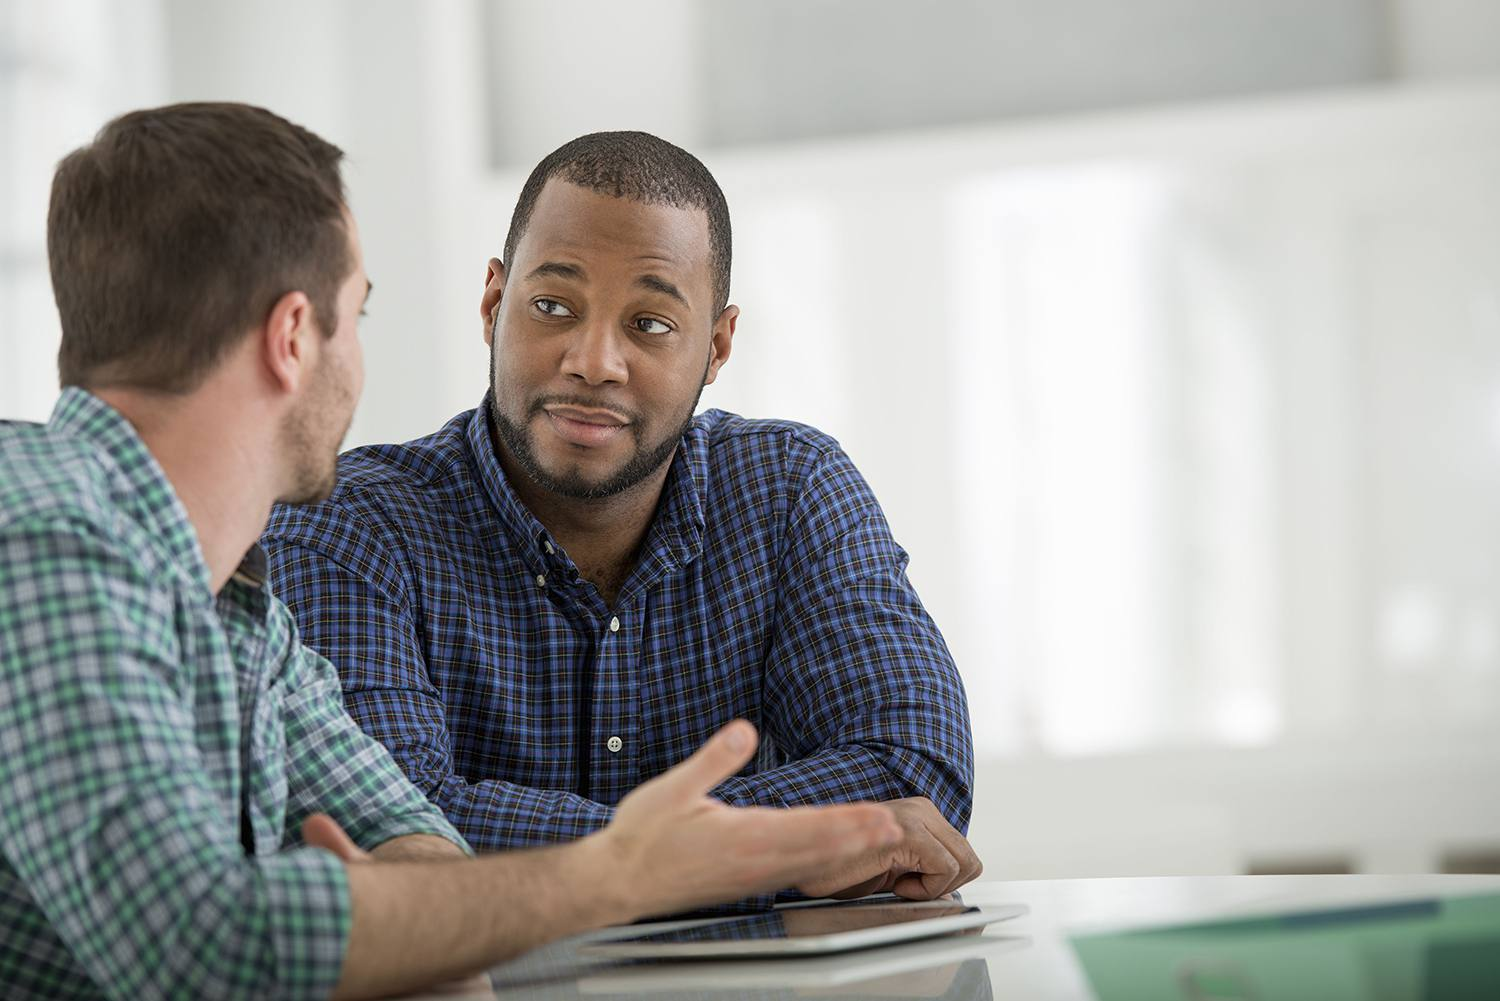 Man listening attentively to another man talking